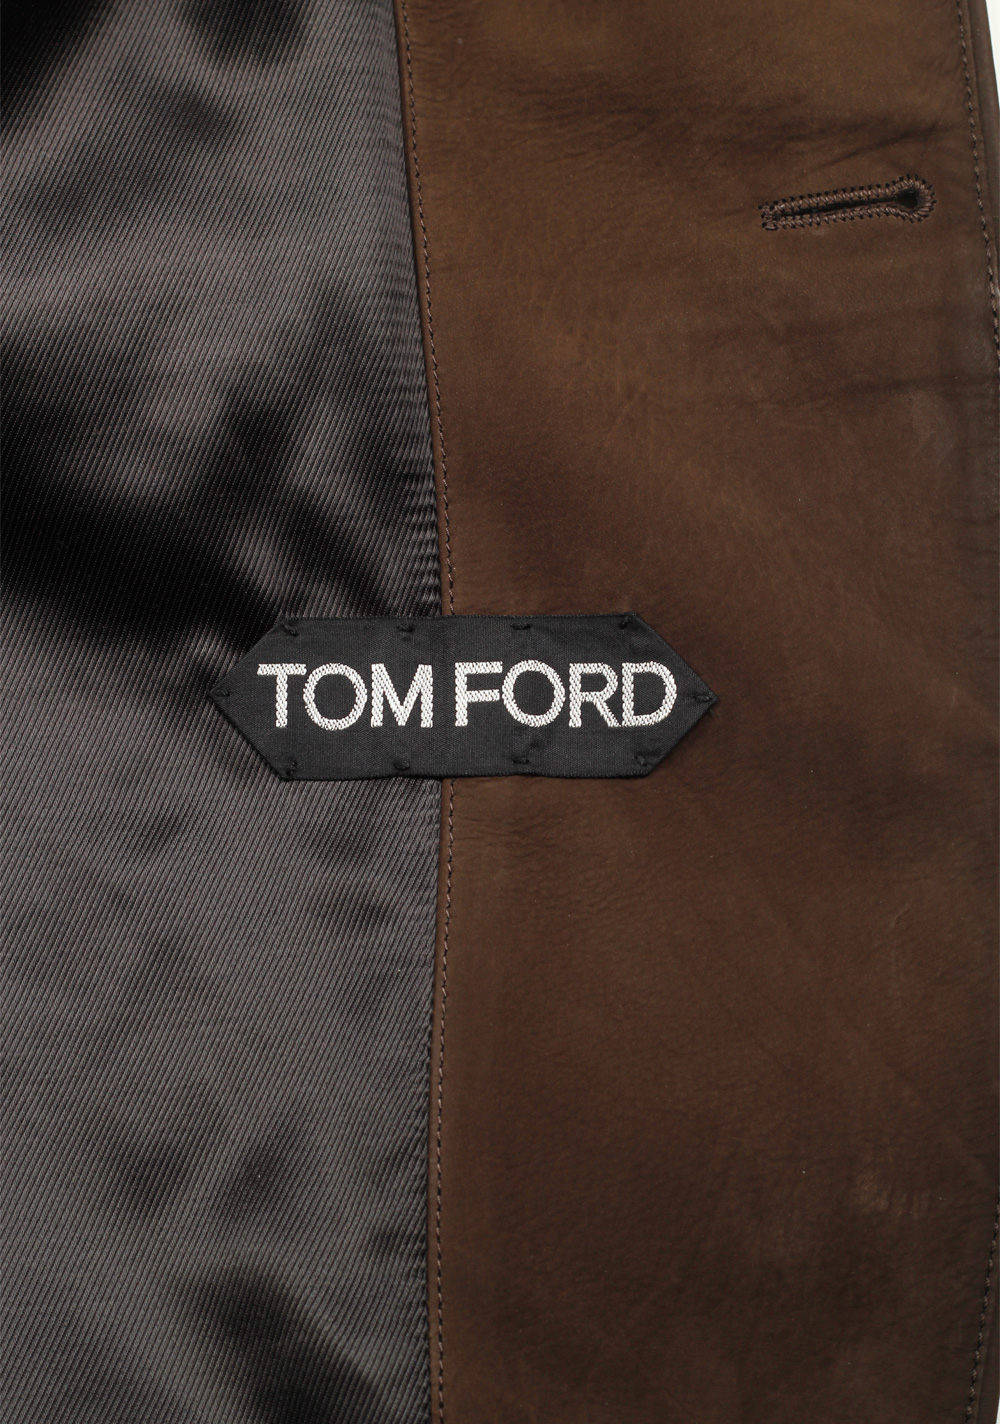 TOM FORD Brown Cashmere Sartorial Leather Suede Jacket Coat Size 48 / 38R U.S. | Costume Limité